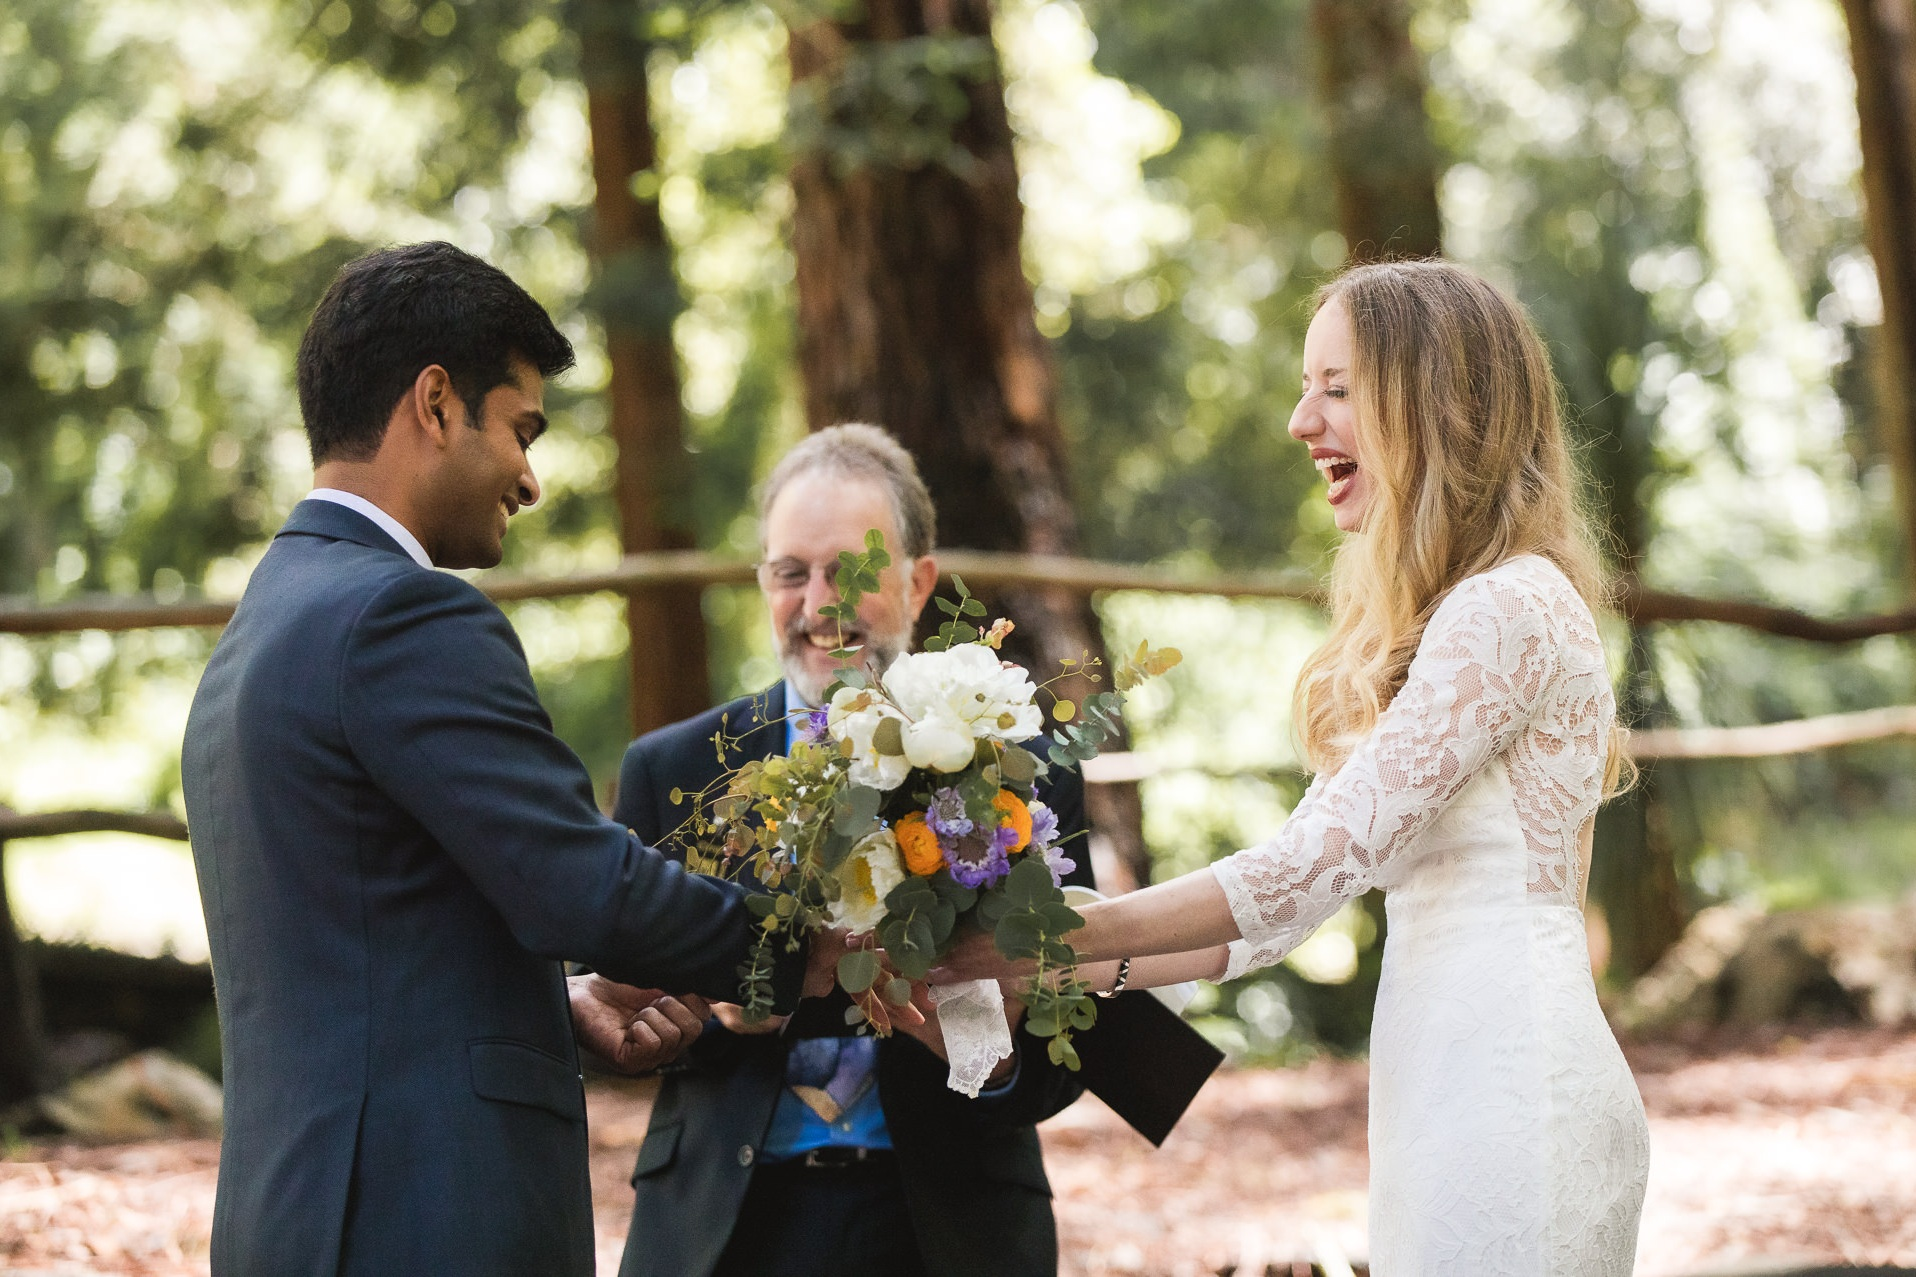 Katie's father was the officiant for their wedding ceremony, so there were plenty of laughs and giggles since he's had experiences of her entire life to share.